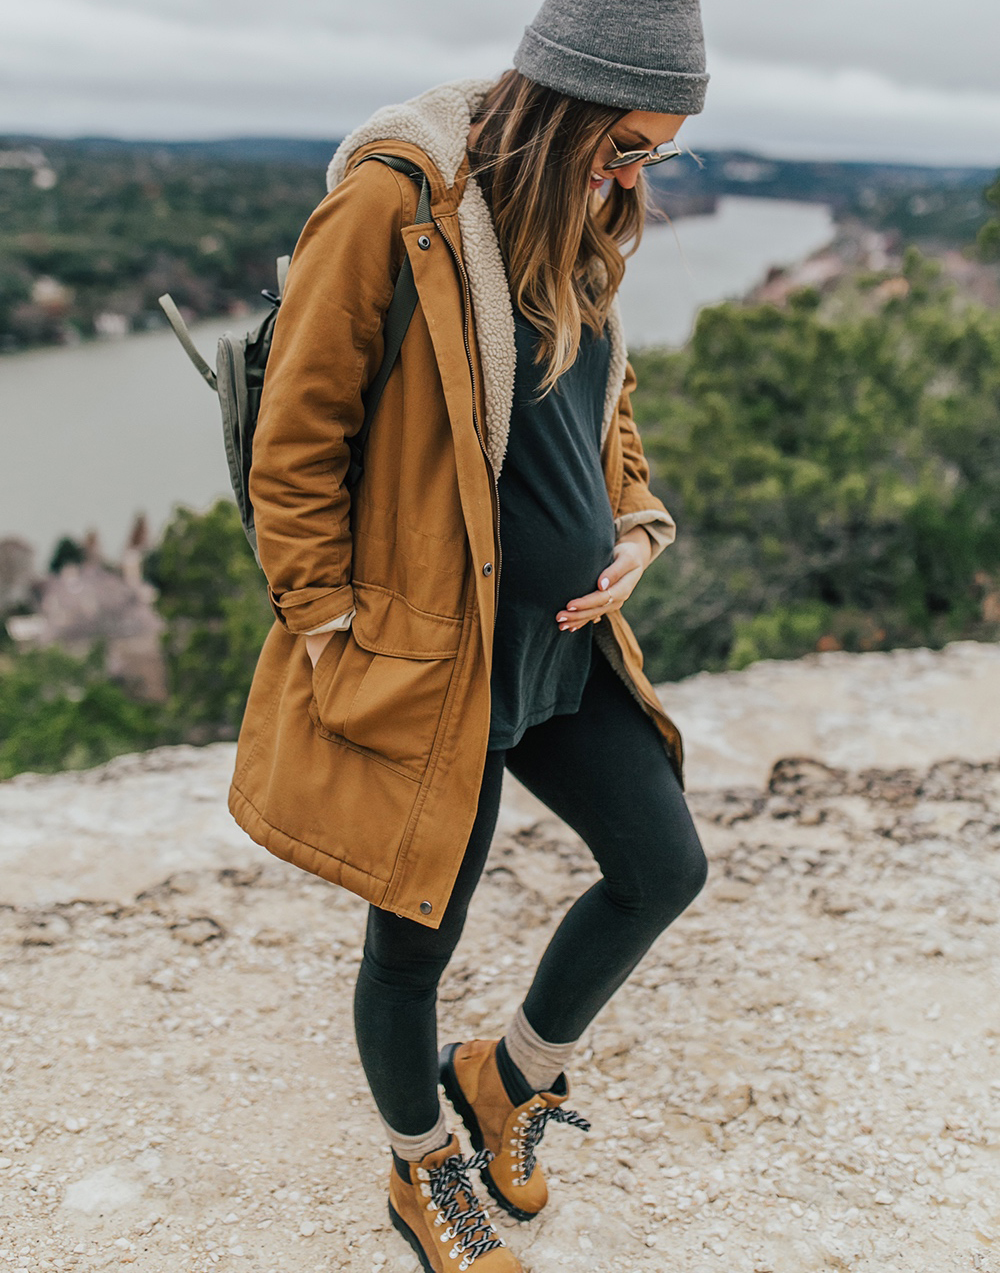 livvyland-blog-olivia-watson-austin-texas-fashion-lifestyle-blogger-patagonia-prarie-dawn-jacket-winter-hike-mount-bonnell-5